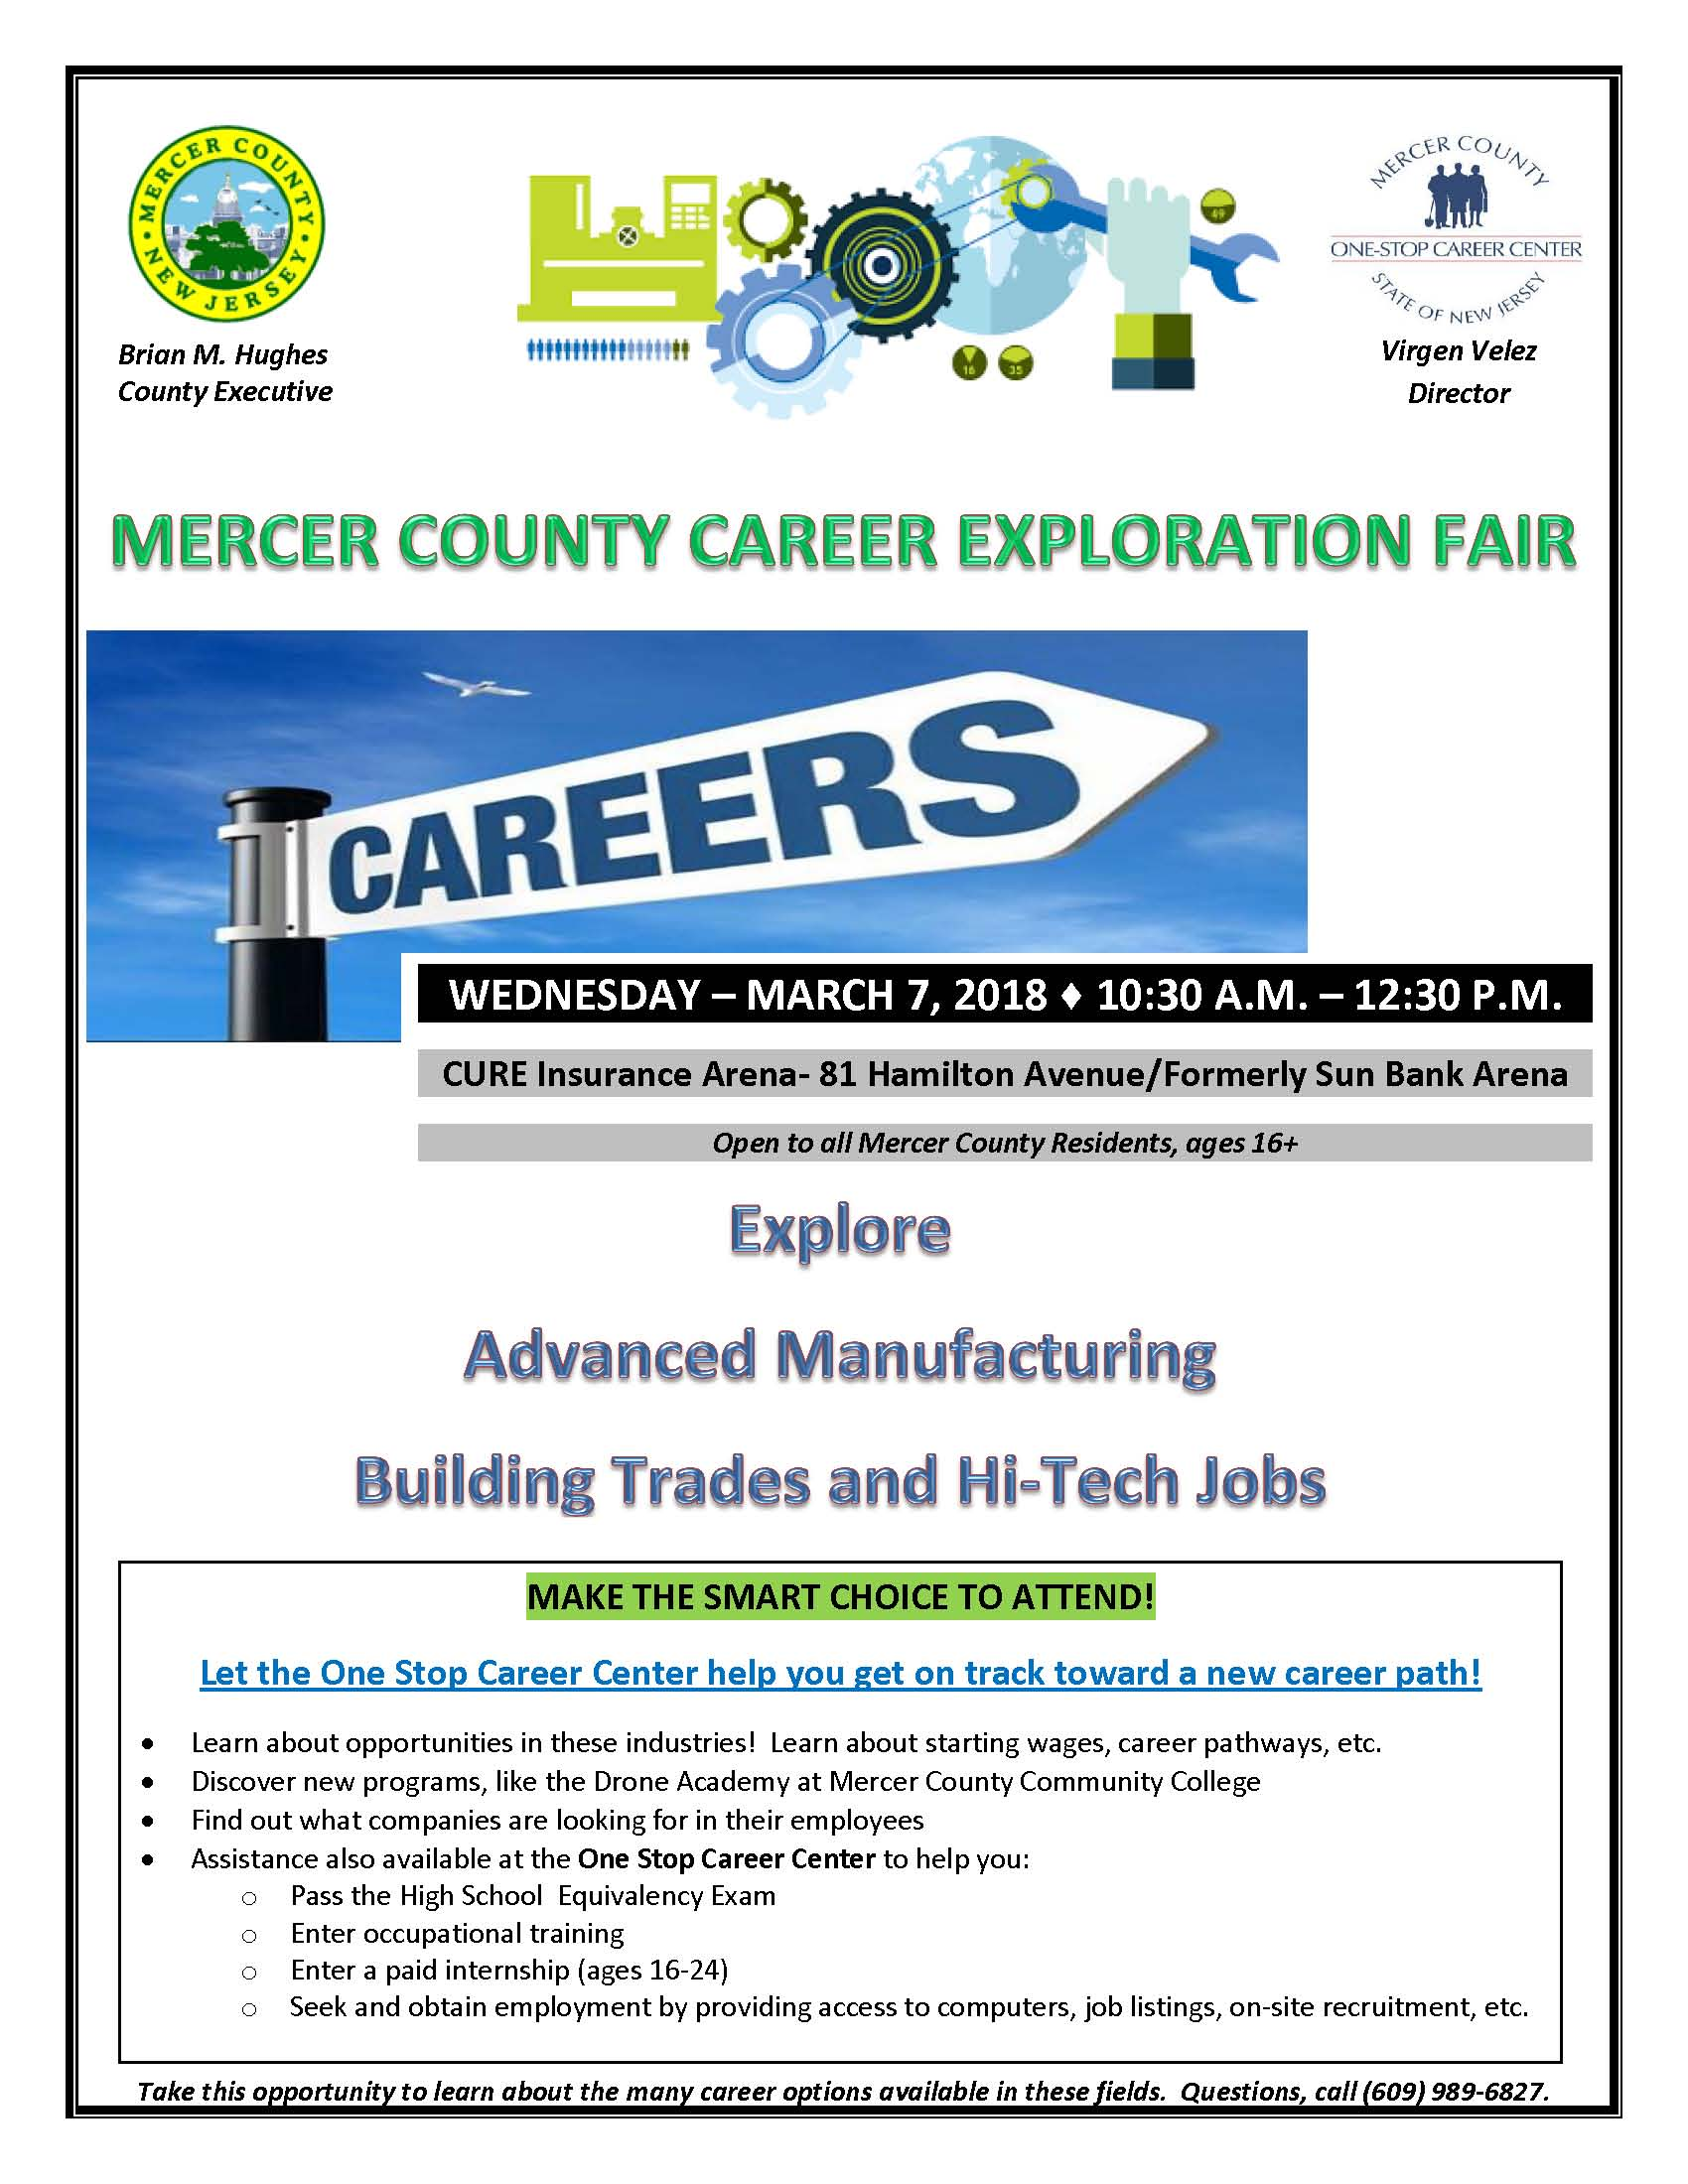 Career Exploration Fair 3-7-17 flyer